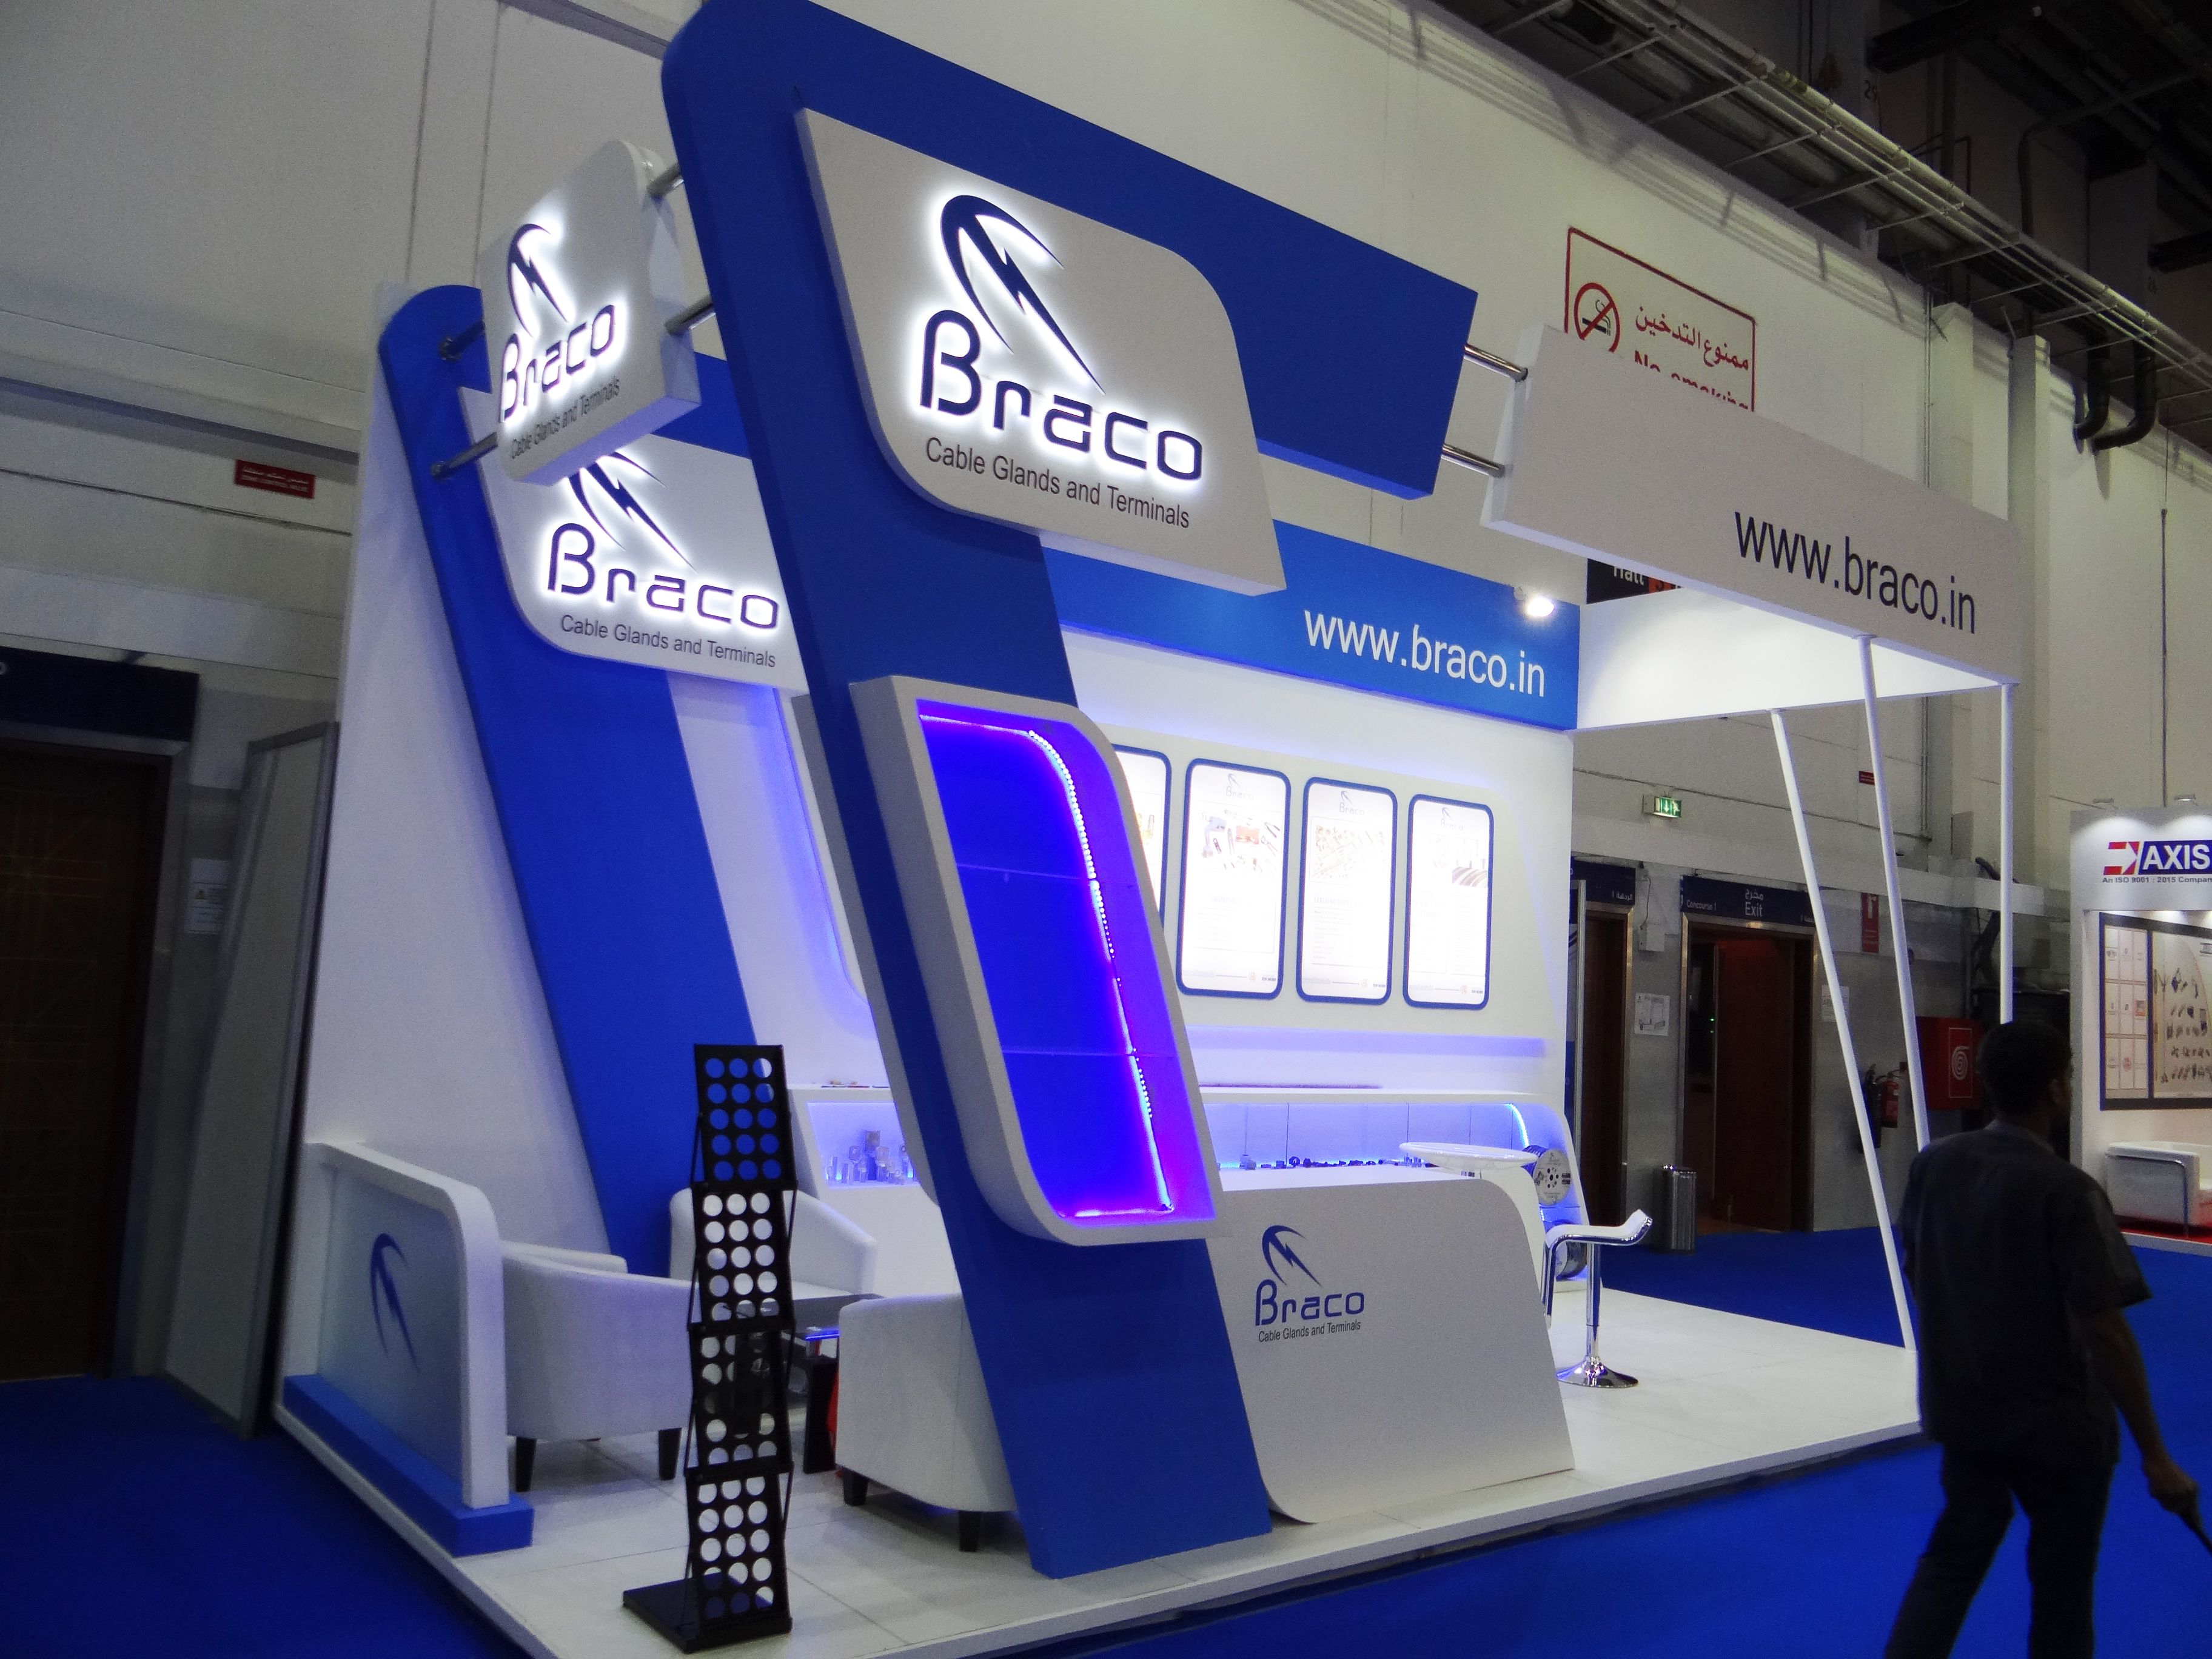 Varistadesigns Design And Build Up For Braco Electrical Private Limited India At Middle East E Exhibition Stand Design Exhibition Stall Design Exhibition Stand